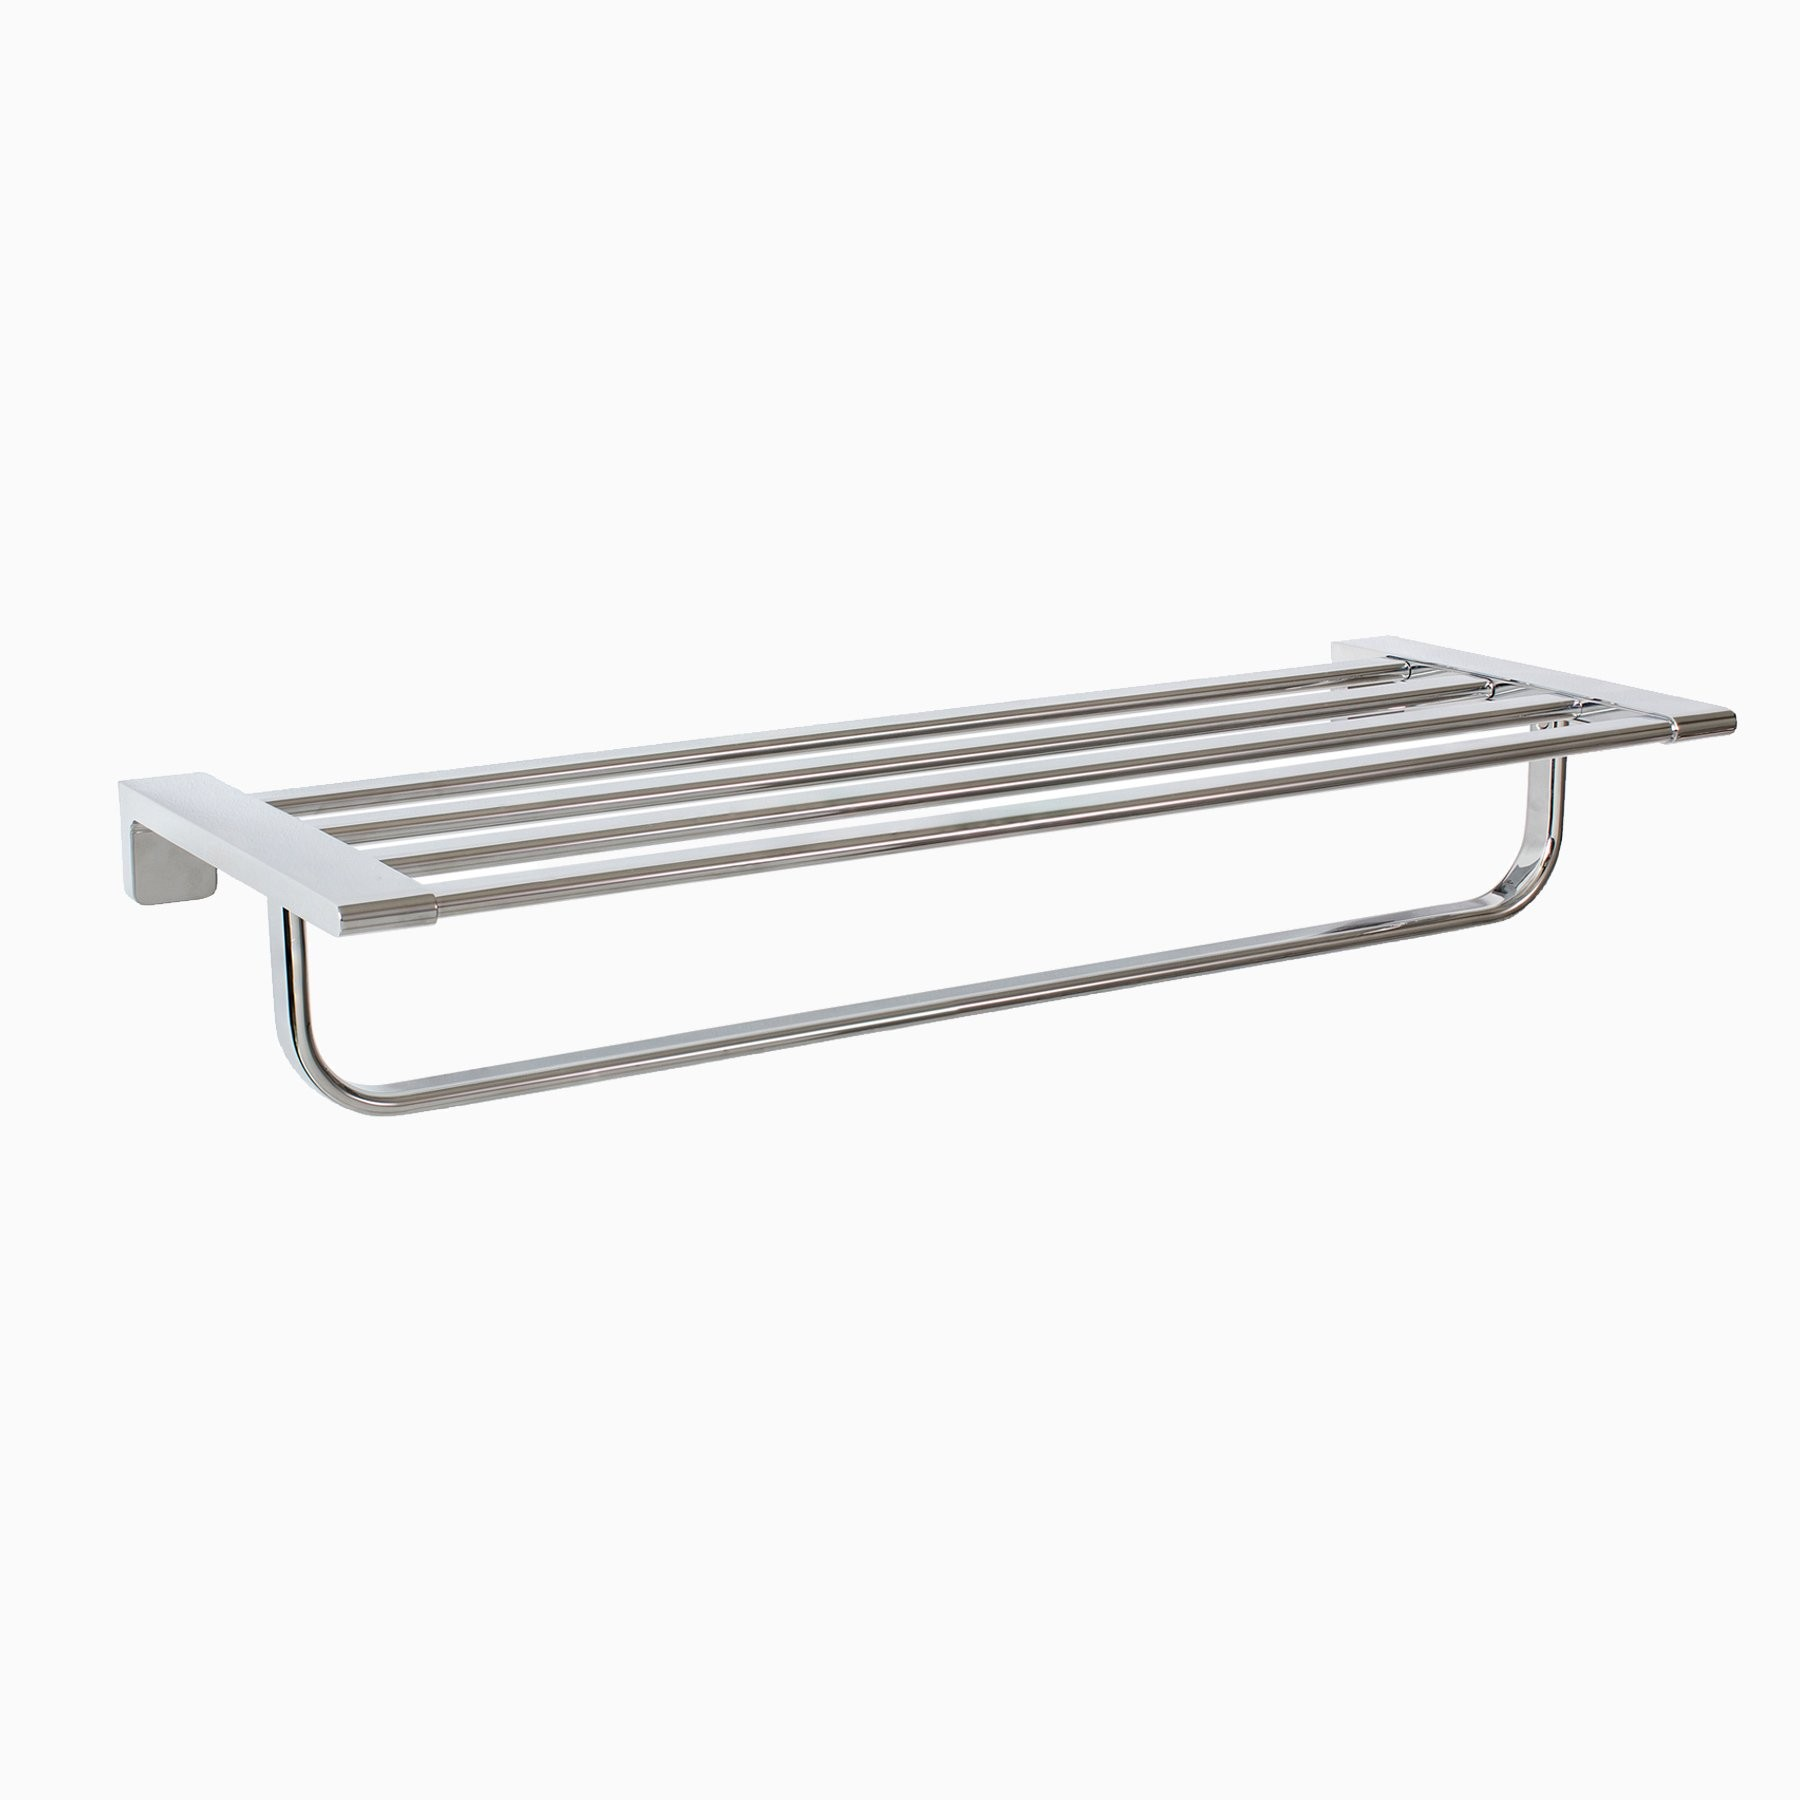 Bathroom Towel Racks - Wall Mounted Towel Rack - Bathroom Towel Shelves